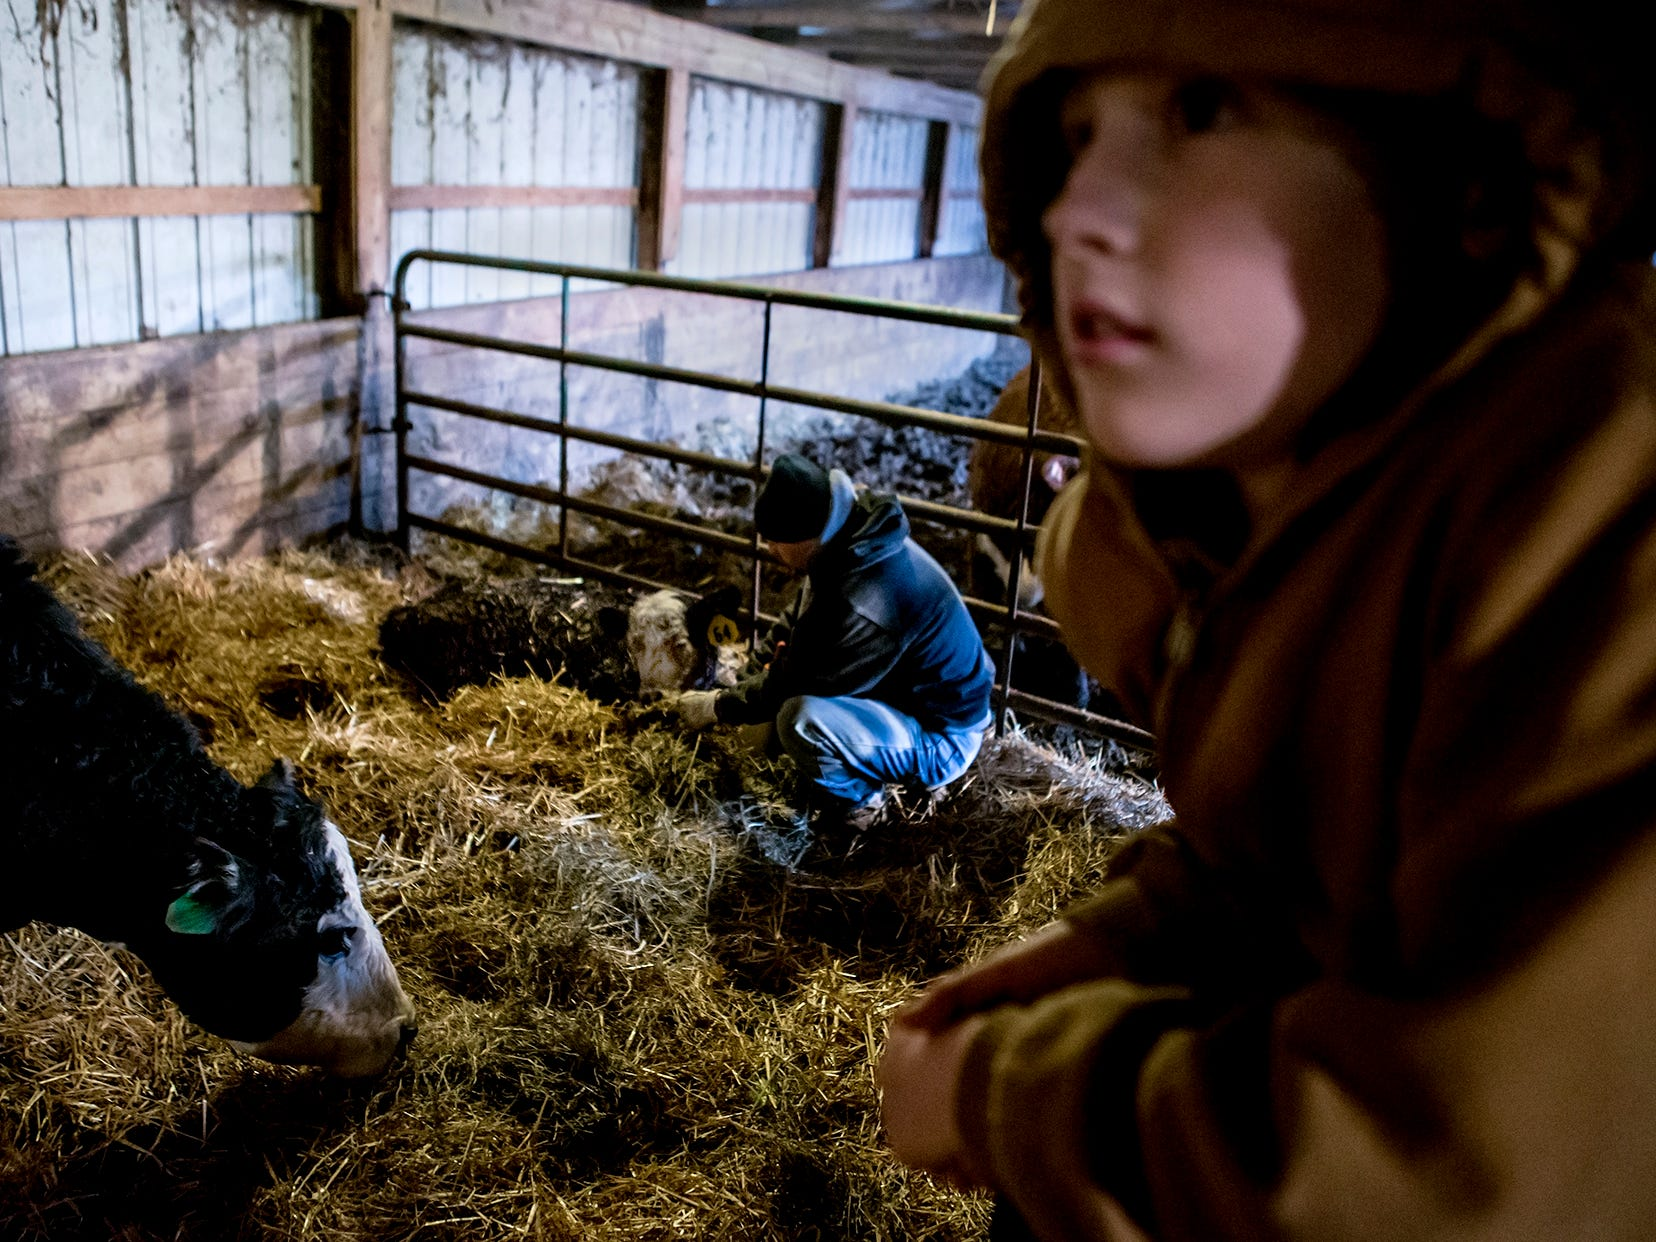 Bryce hangs out in the cow barn as his father bottle feeds a sick baby calf. This calf is slowly getting stronger and eating more as the days go by.